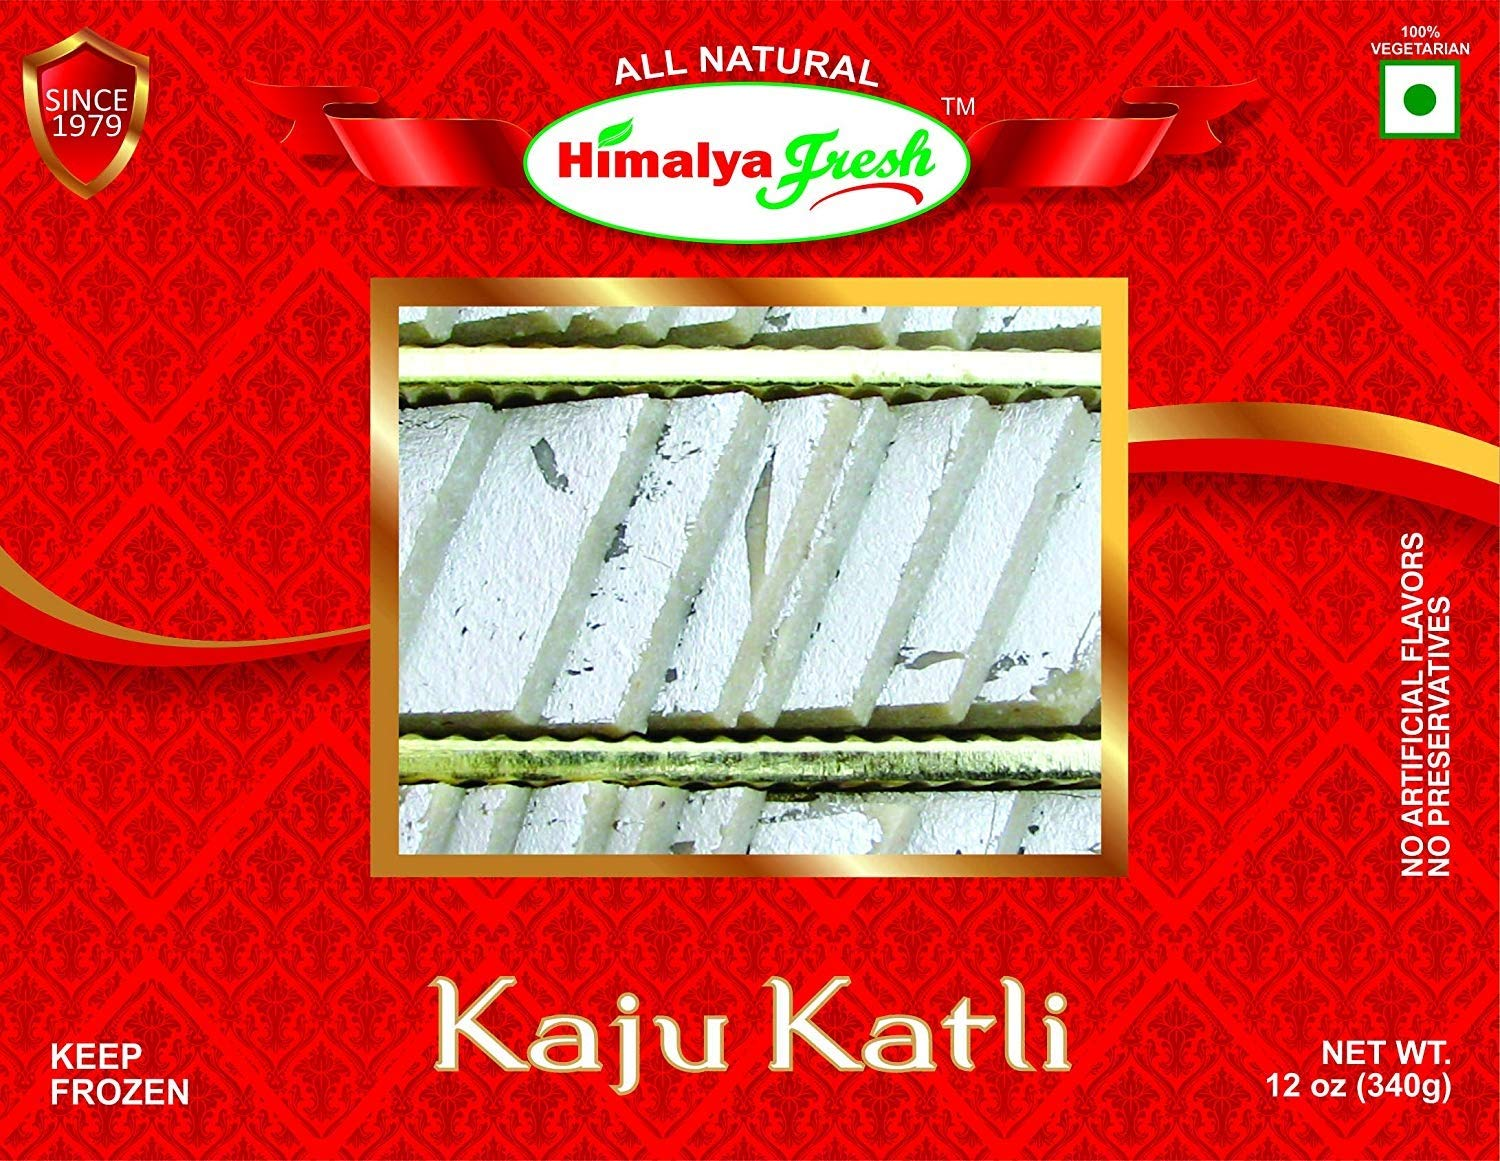 HIMALYA FRESH Kaju Katli 12oz - Premium Authentic Indian Food & Sweets Made With Cashew Nuts. Just two ingredients Cashew Nuts and sugar - No Fillers Or Preservatives (2 Boxes) by Himalya Fresh